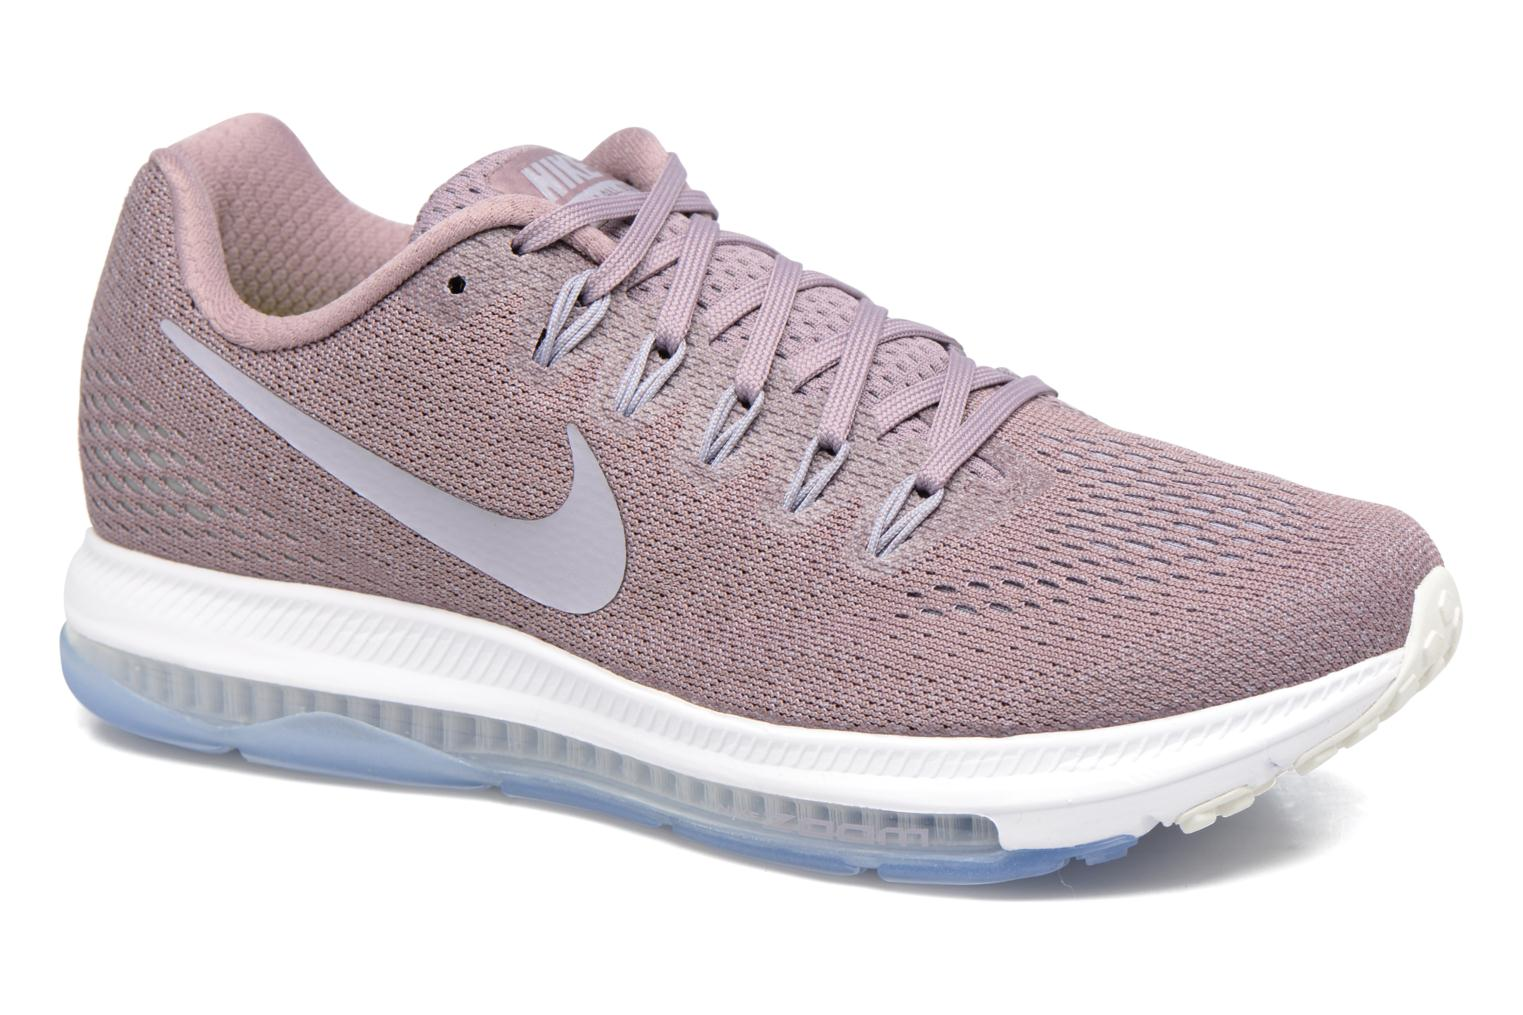 Chaussures de sport Nike Wmns Nike Zoom All Out Low Violet vue détail/paire